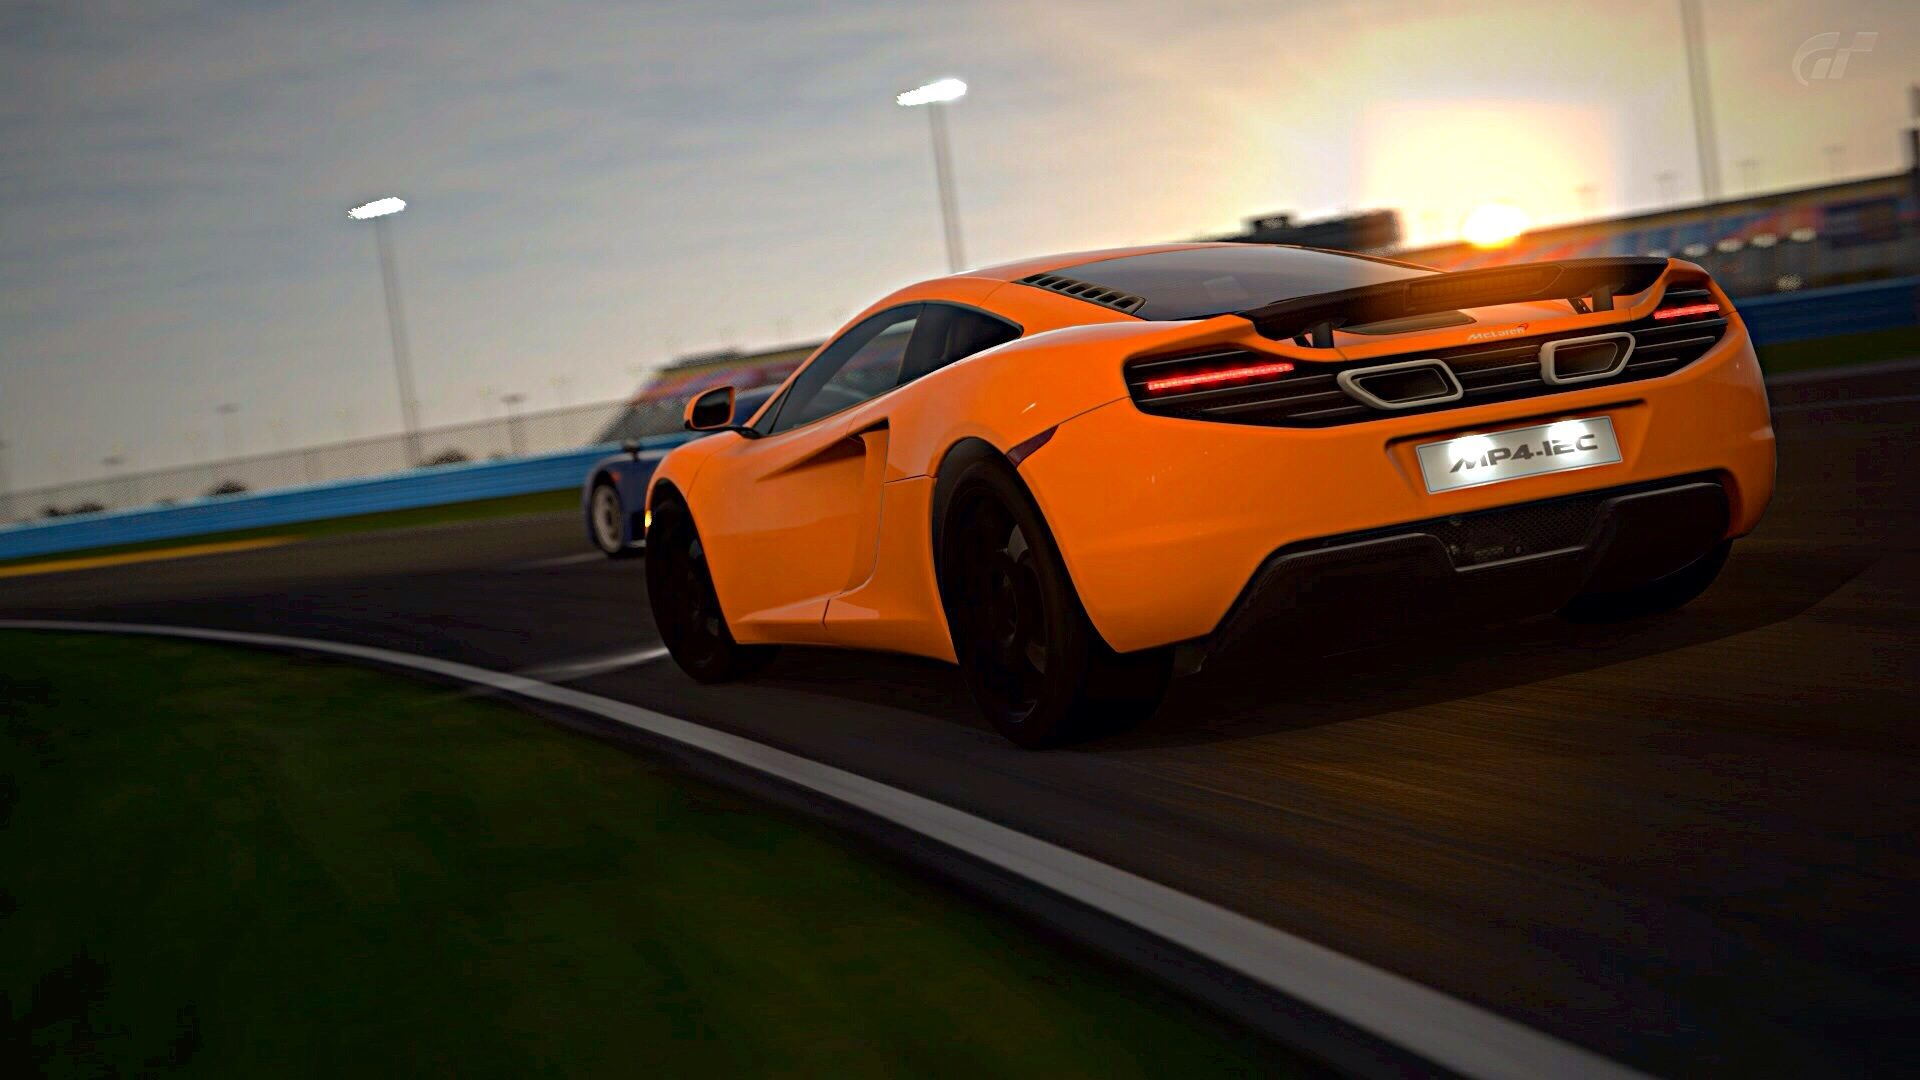 MP4-12C GTC Daytona Road Course (7).jpg